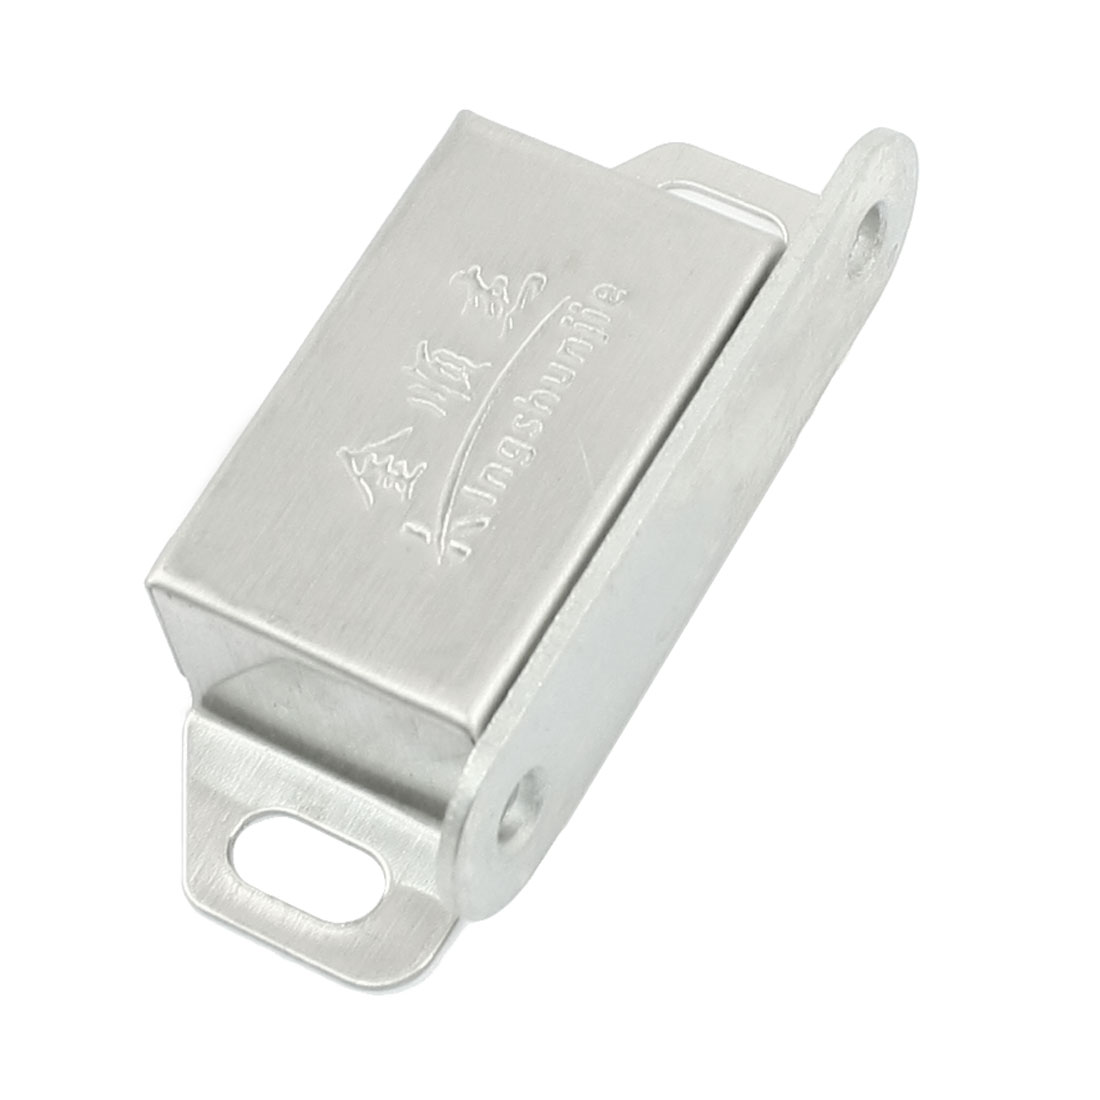 Closet Door Silver Tone Magnetic Catch Stopper 45mm Long